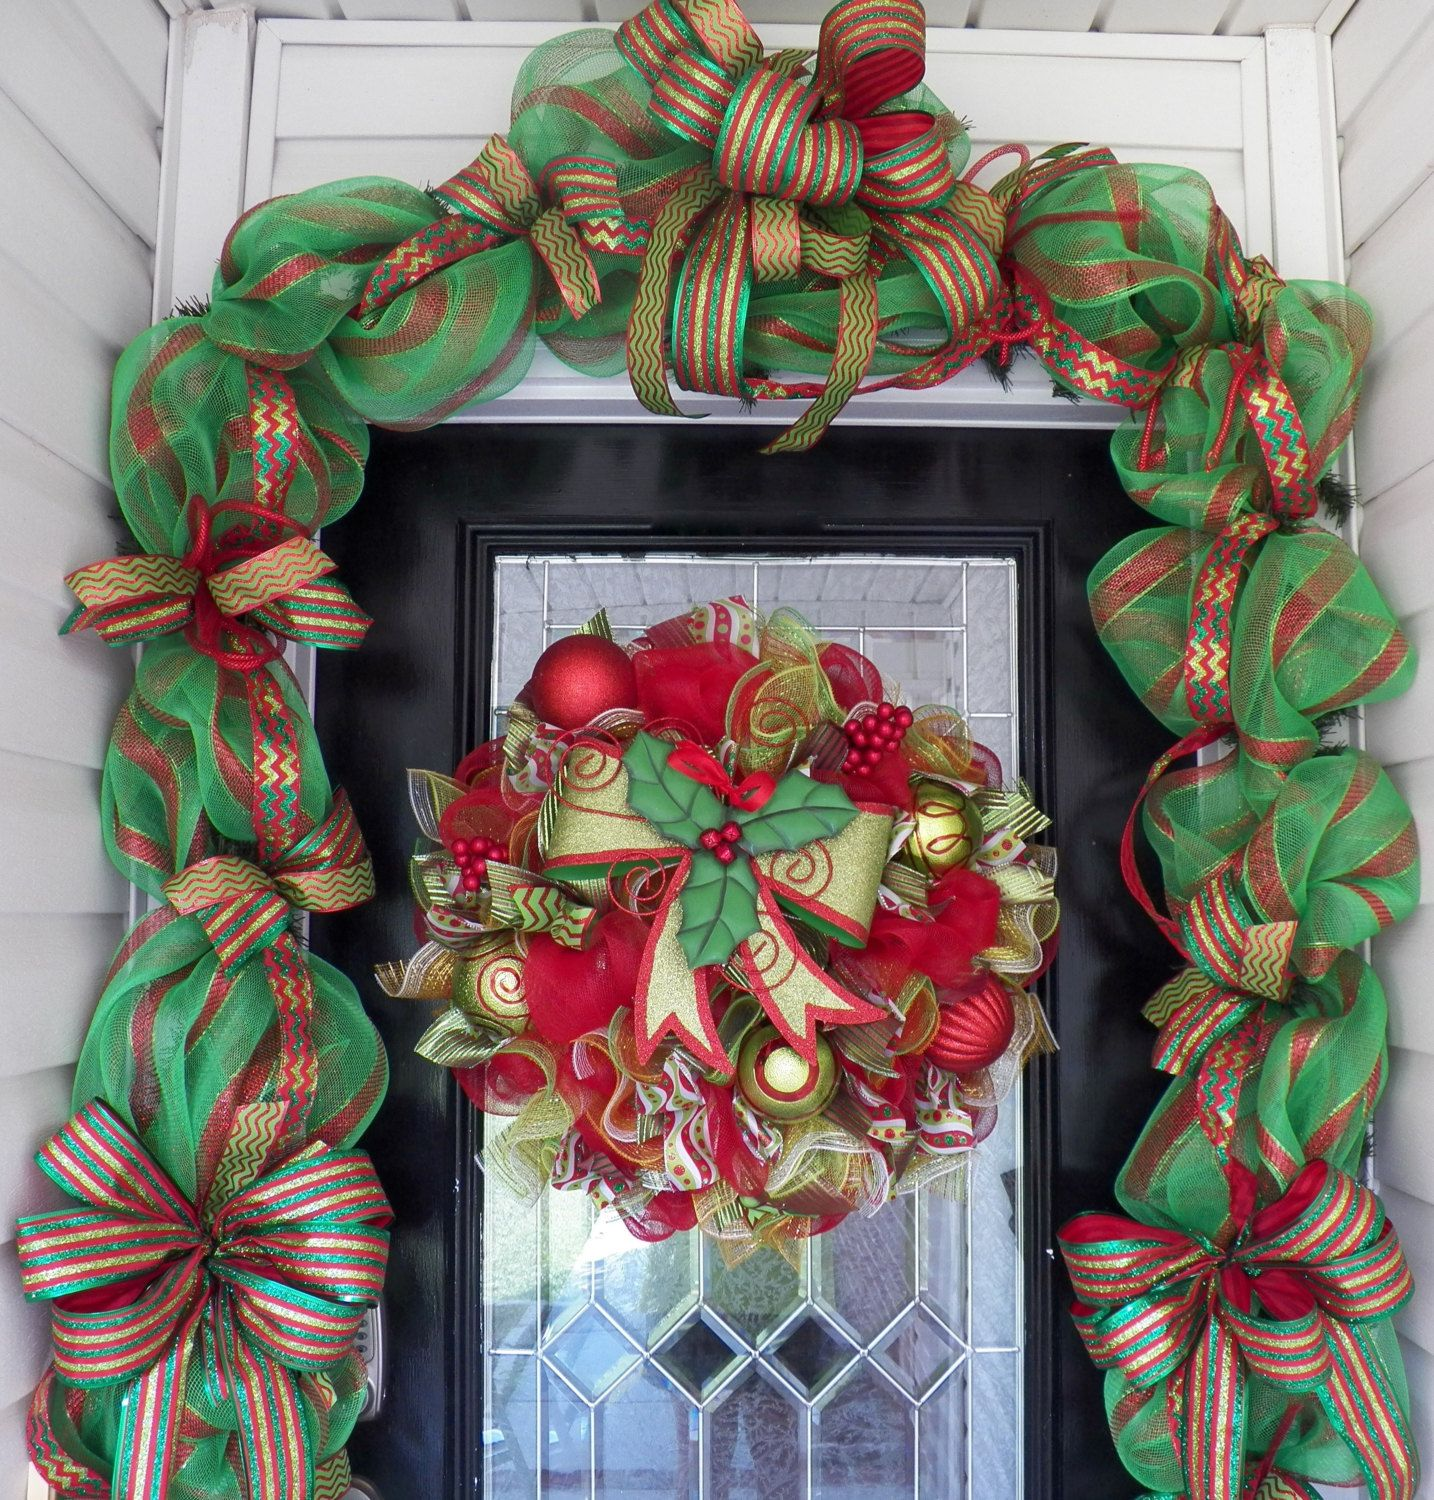 Holiday Wreath With Door Garland Christmas Wreath Christmas Garland Wreath And Garland Set Door Decor Christmas Wreaths Christmas Garland Holiday Wreaths